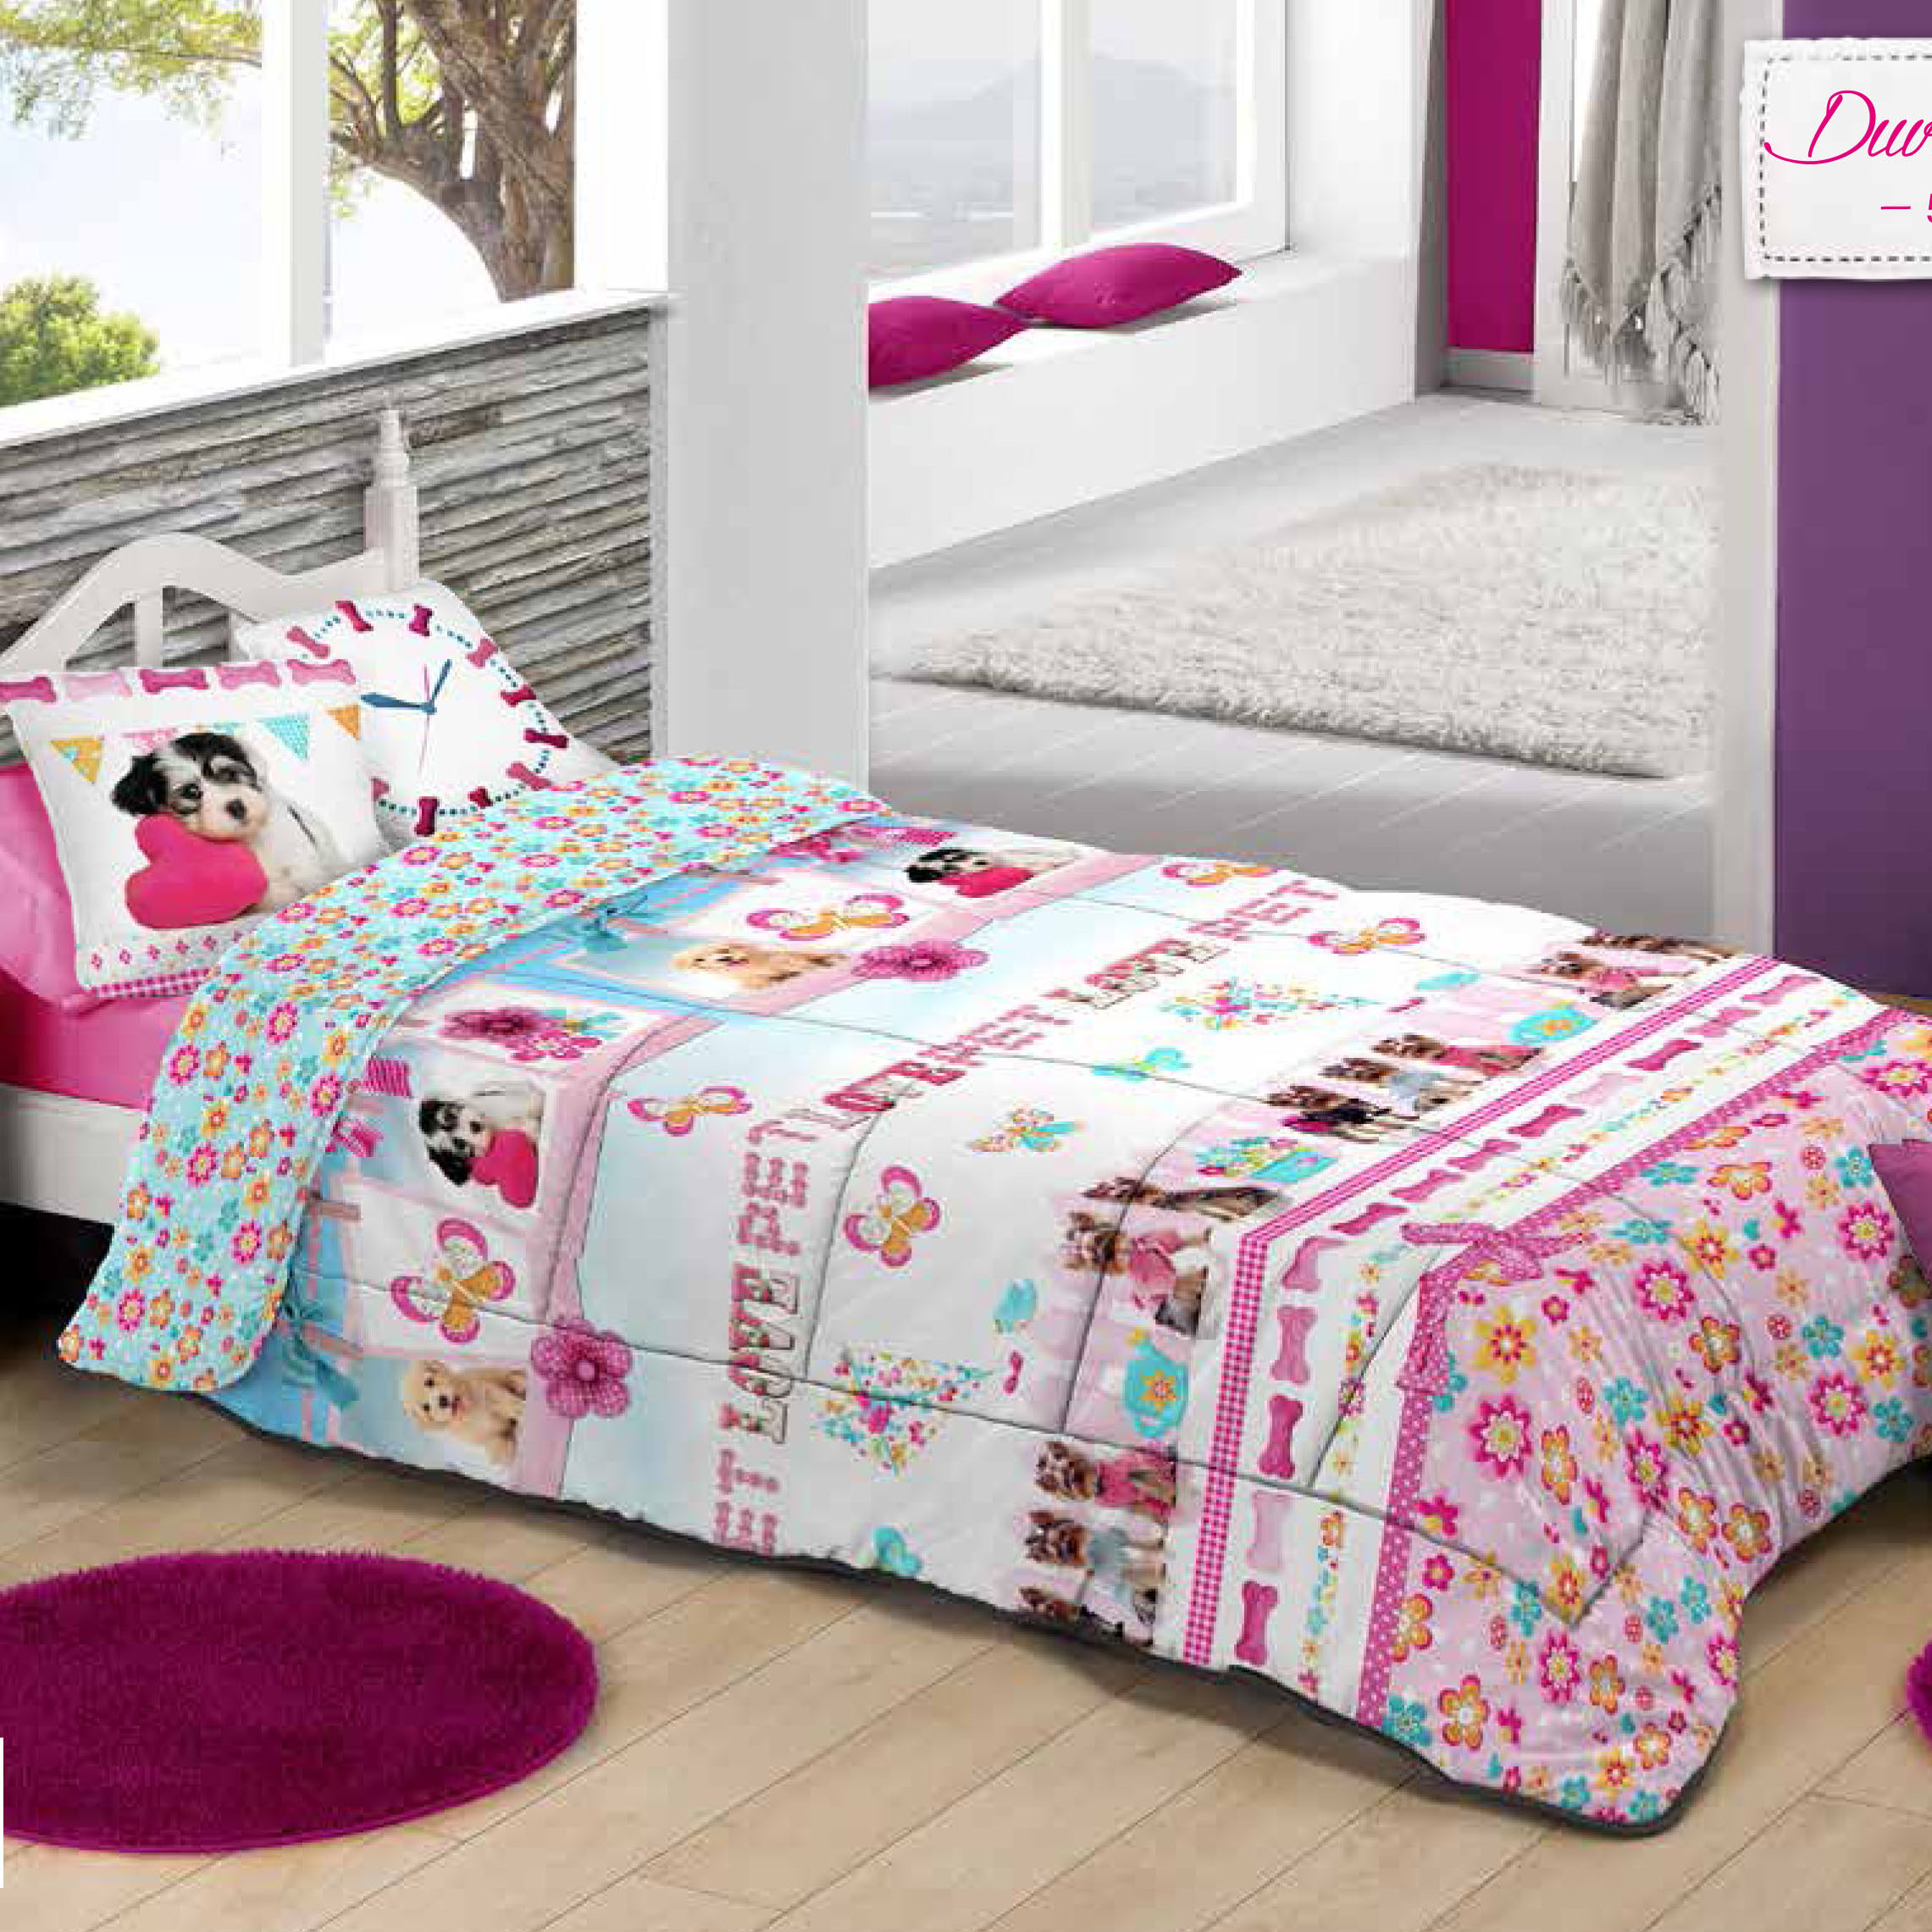 DUVET JUNIOR 583